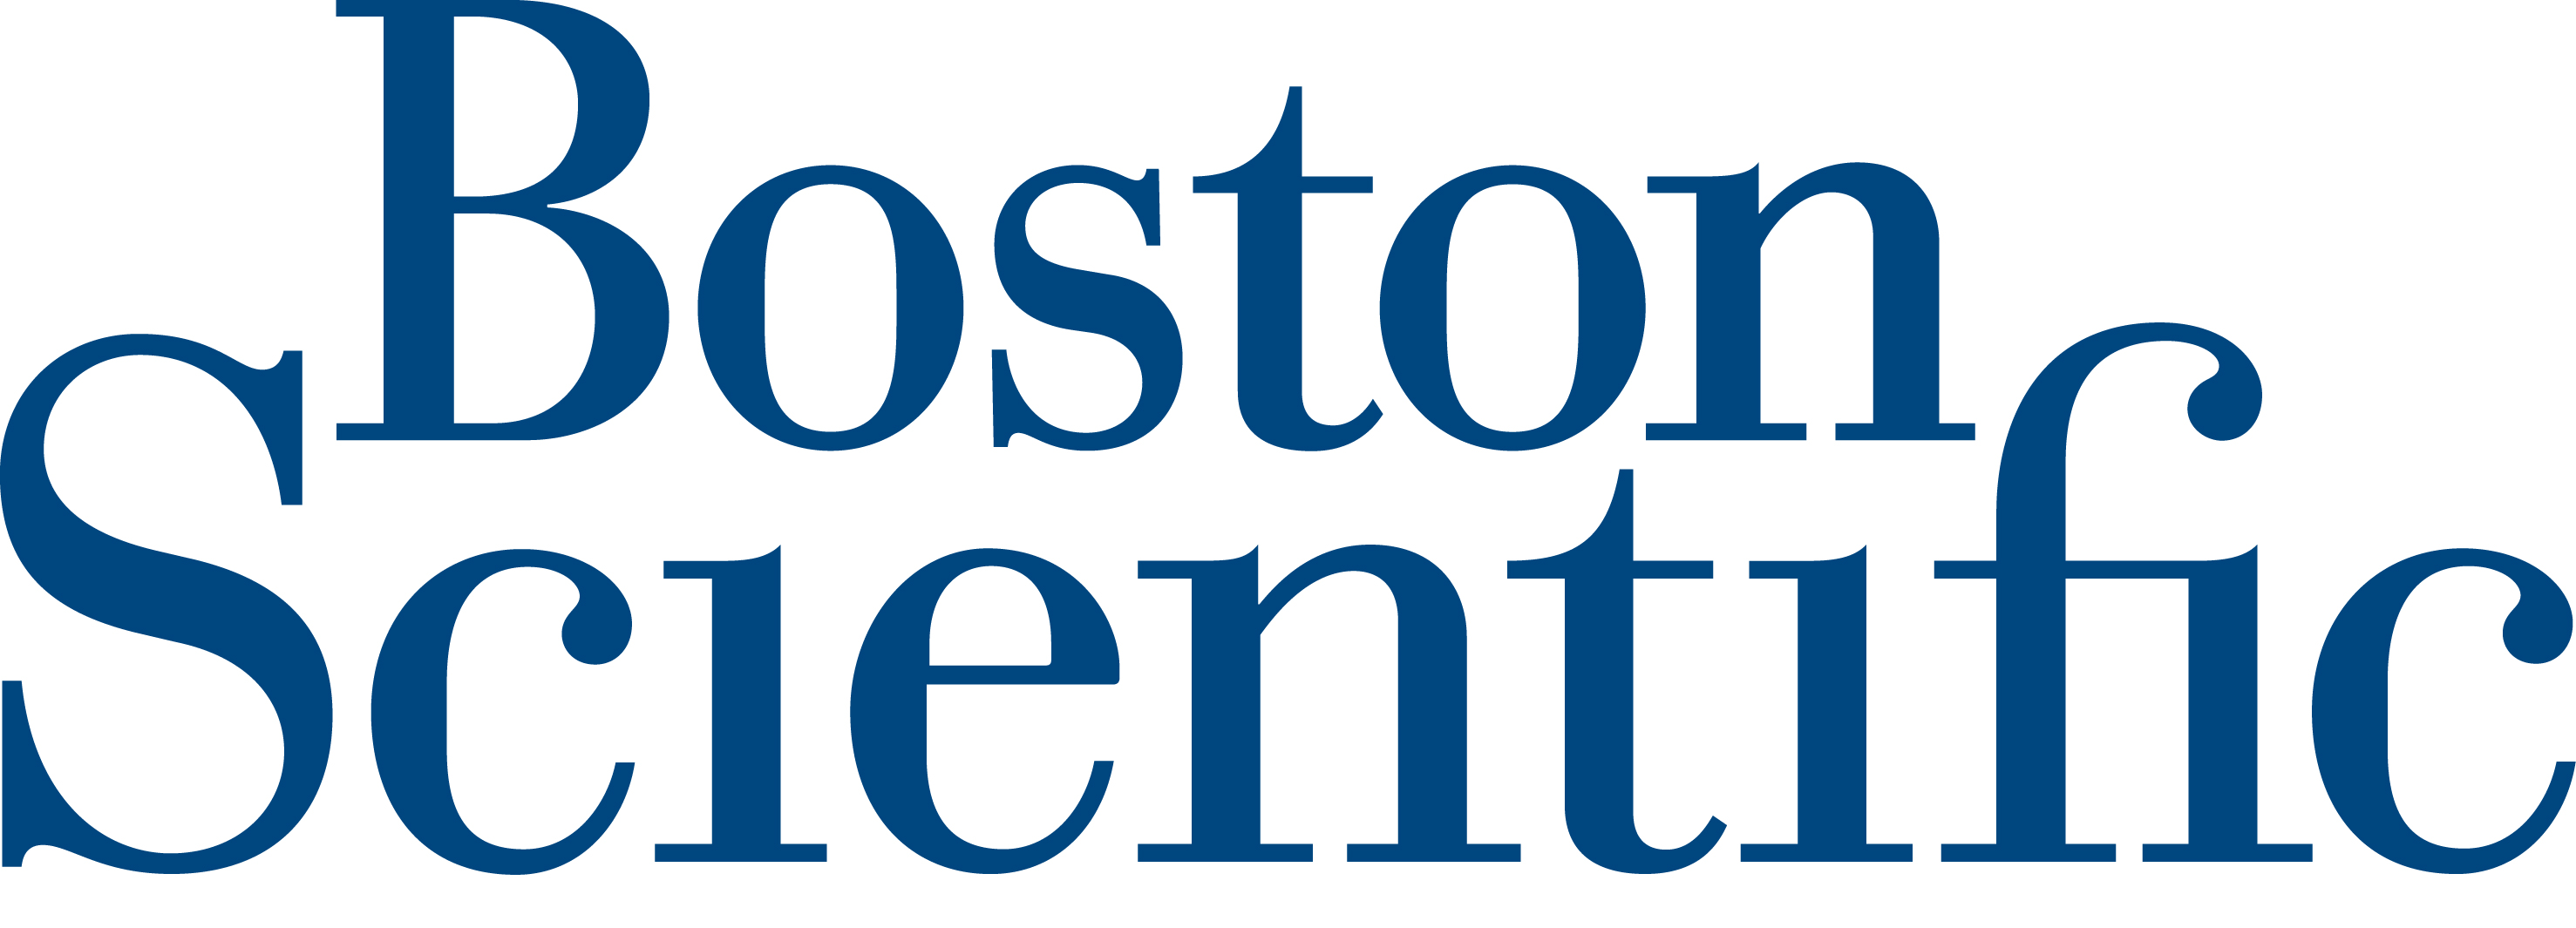 Image result for boston scientific logo